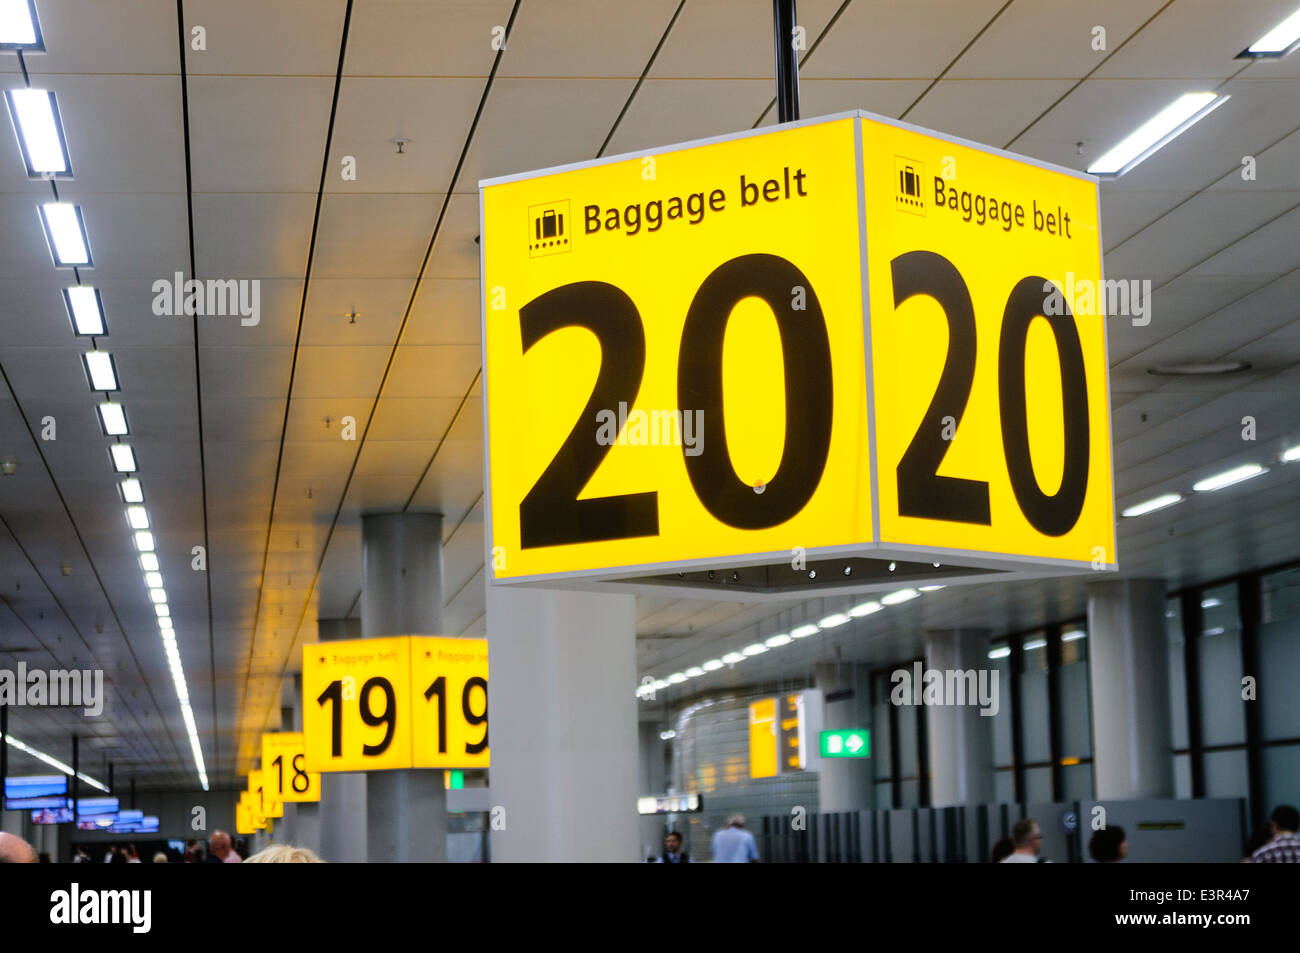 Row of baggage belts at Schiphol Airport - Stock Image